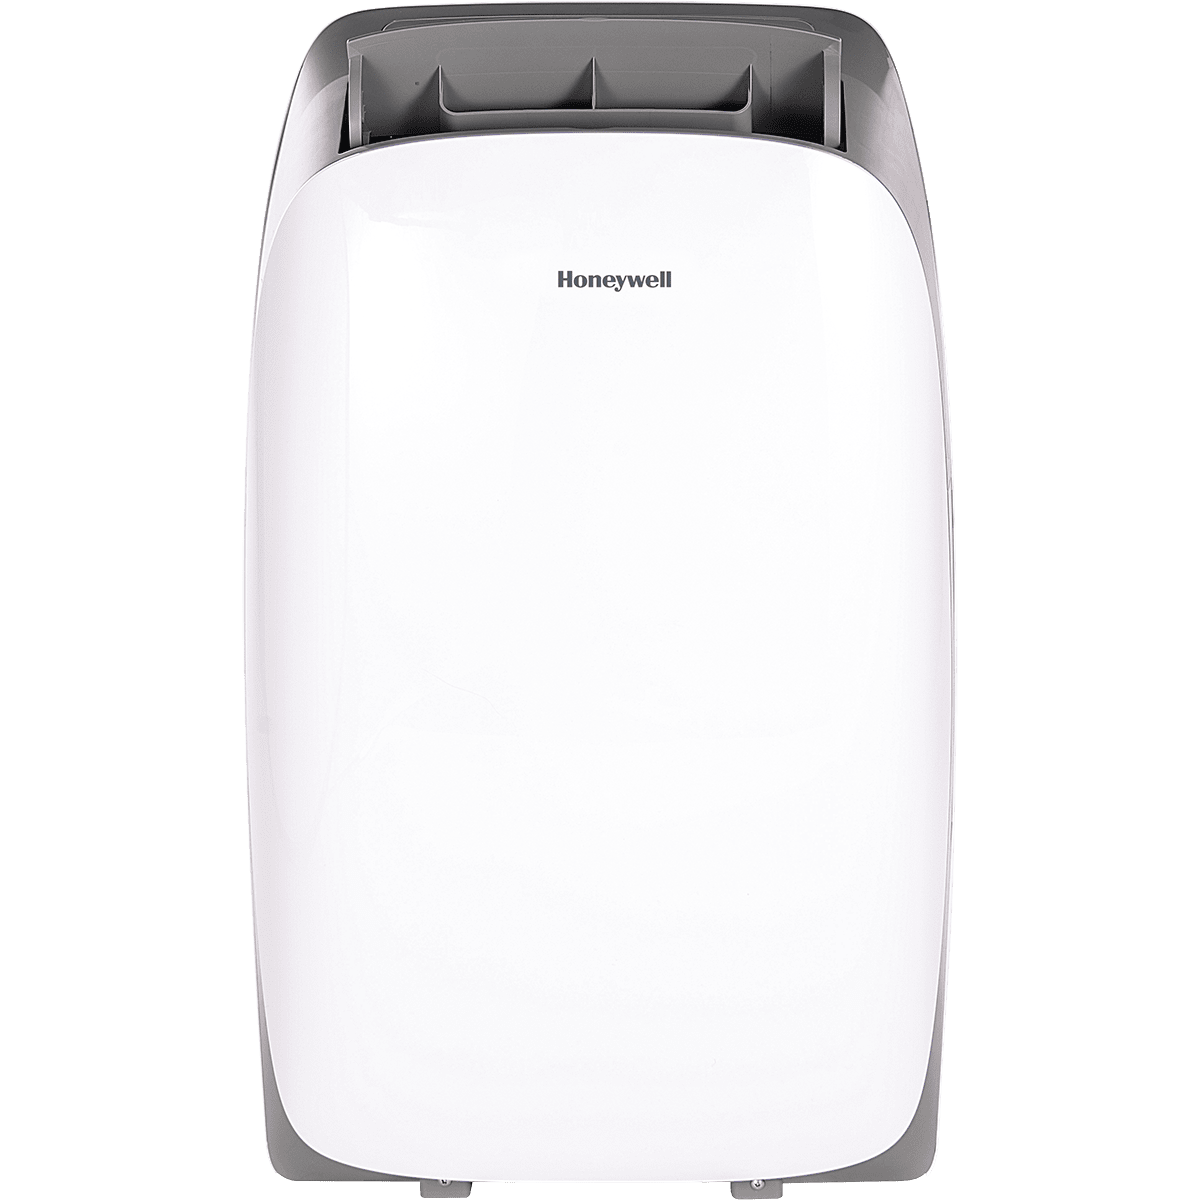 Honeywell HL Series 14,000 BTU Portable Air Conditioners ho5475